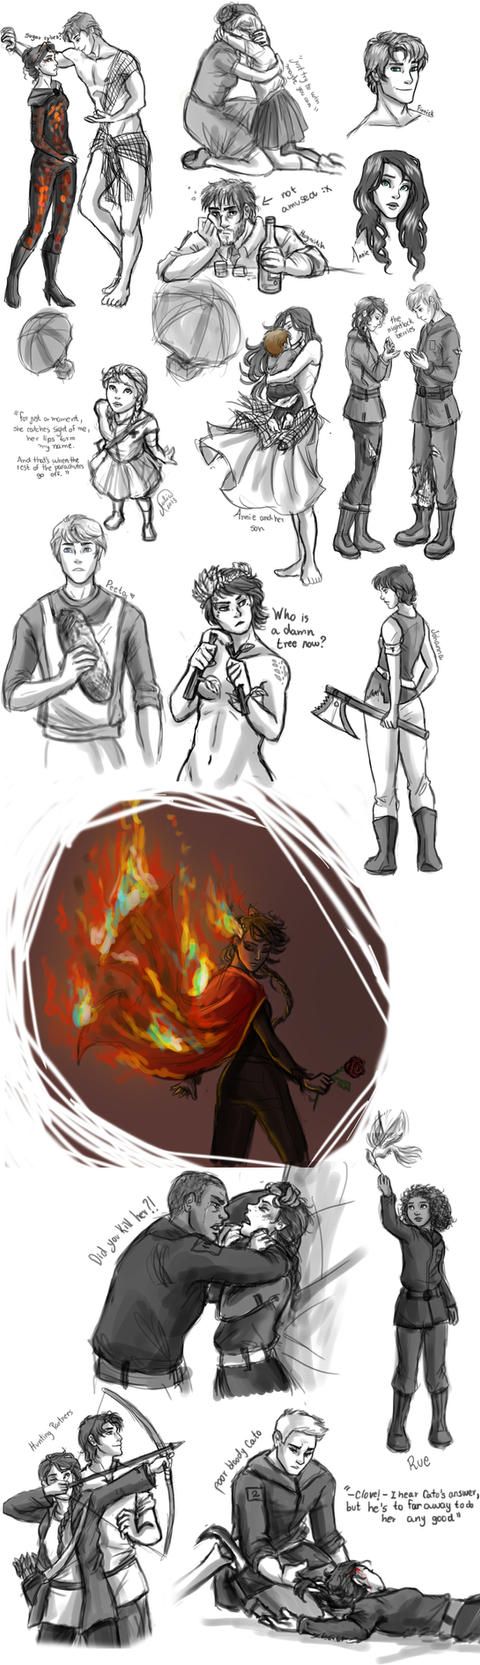 The Hunger Games Sketch Dump by juliajm15